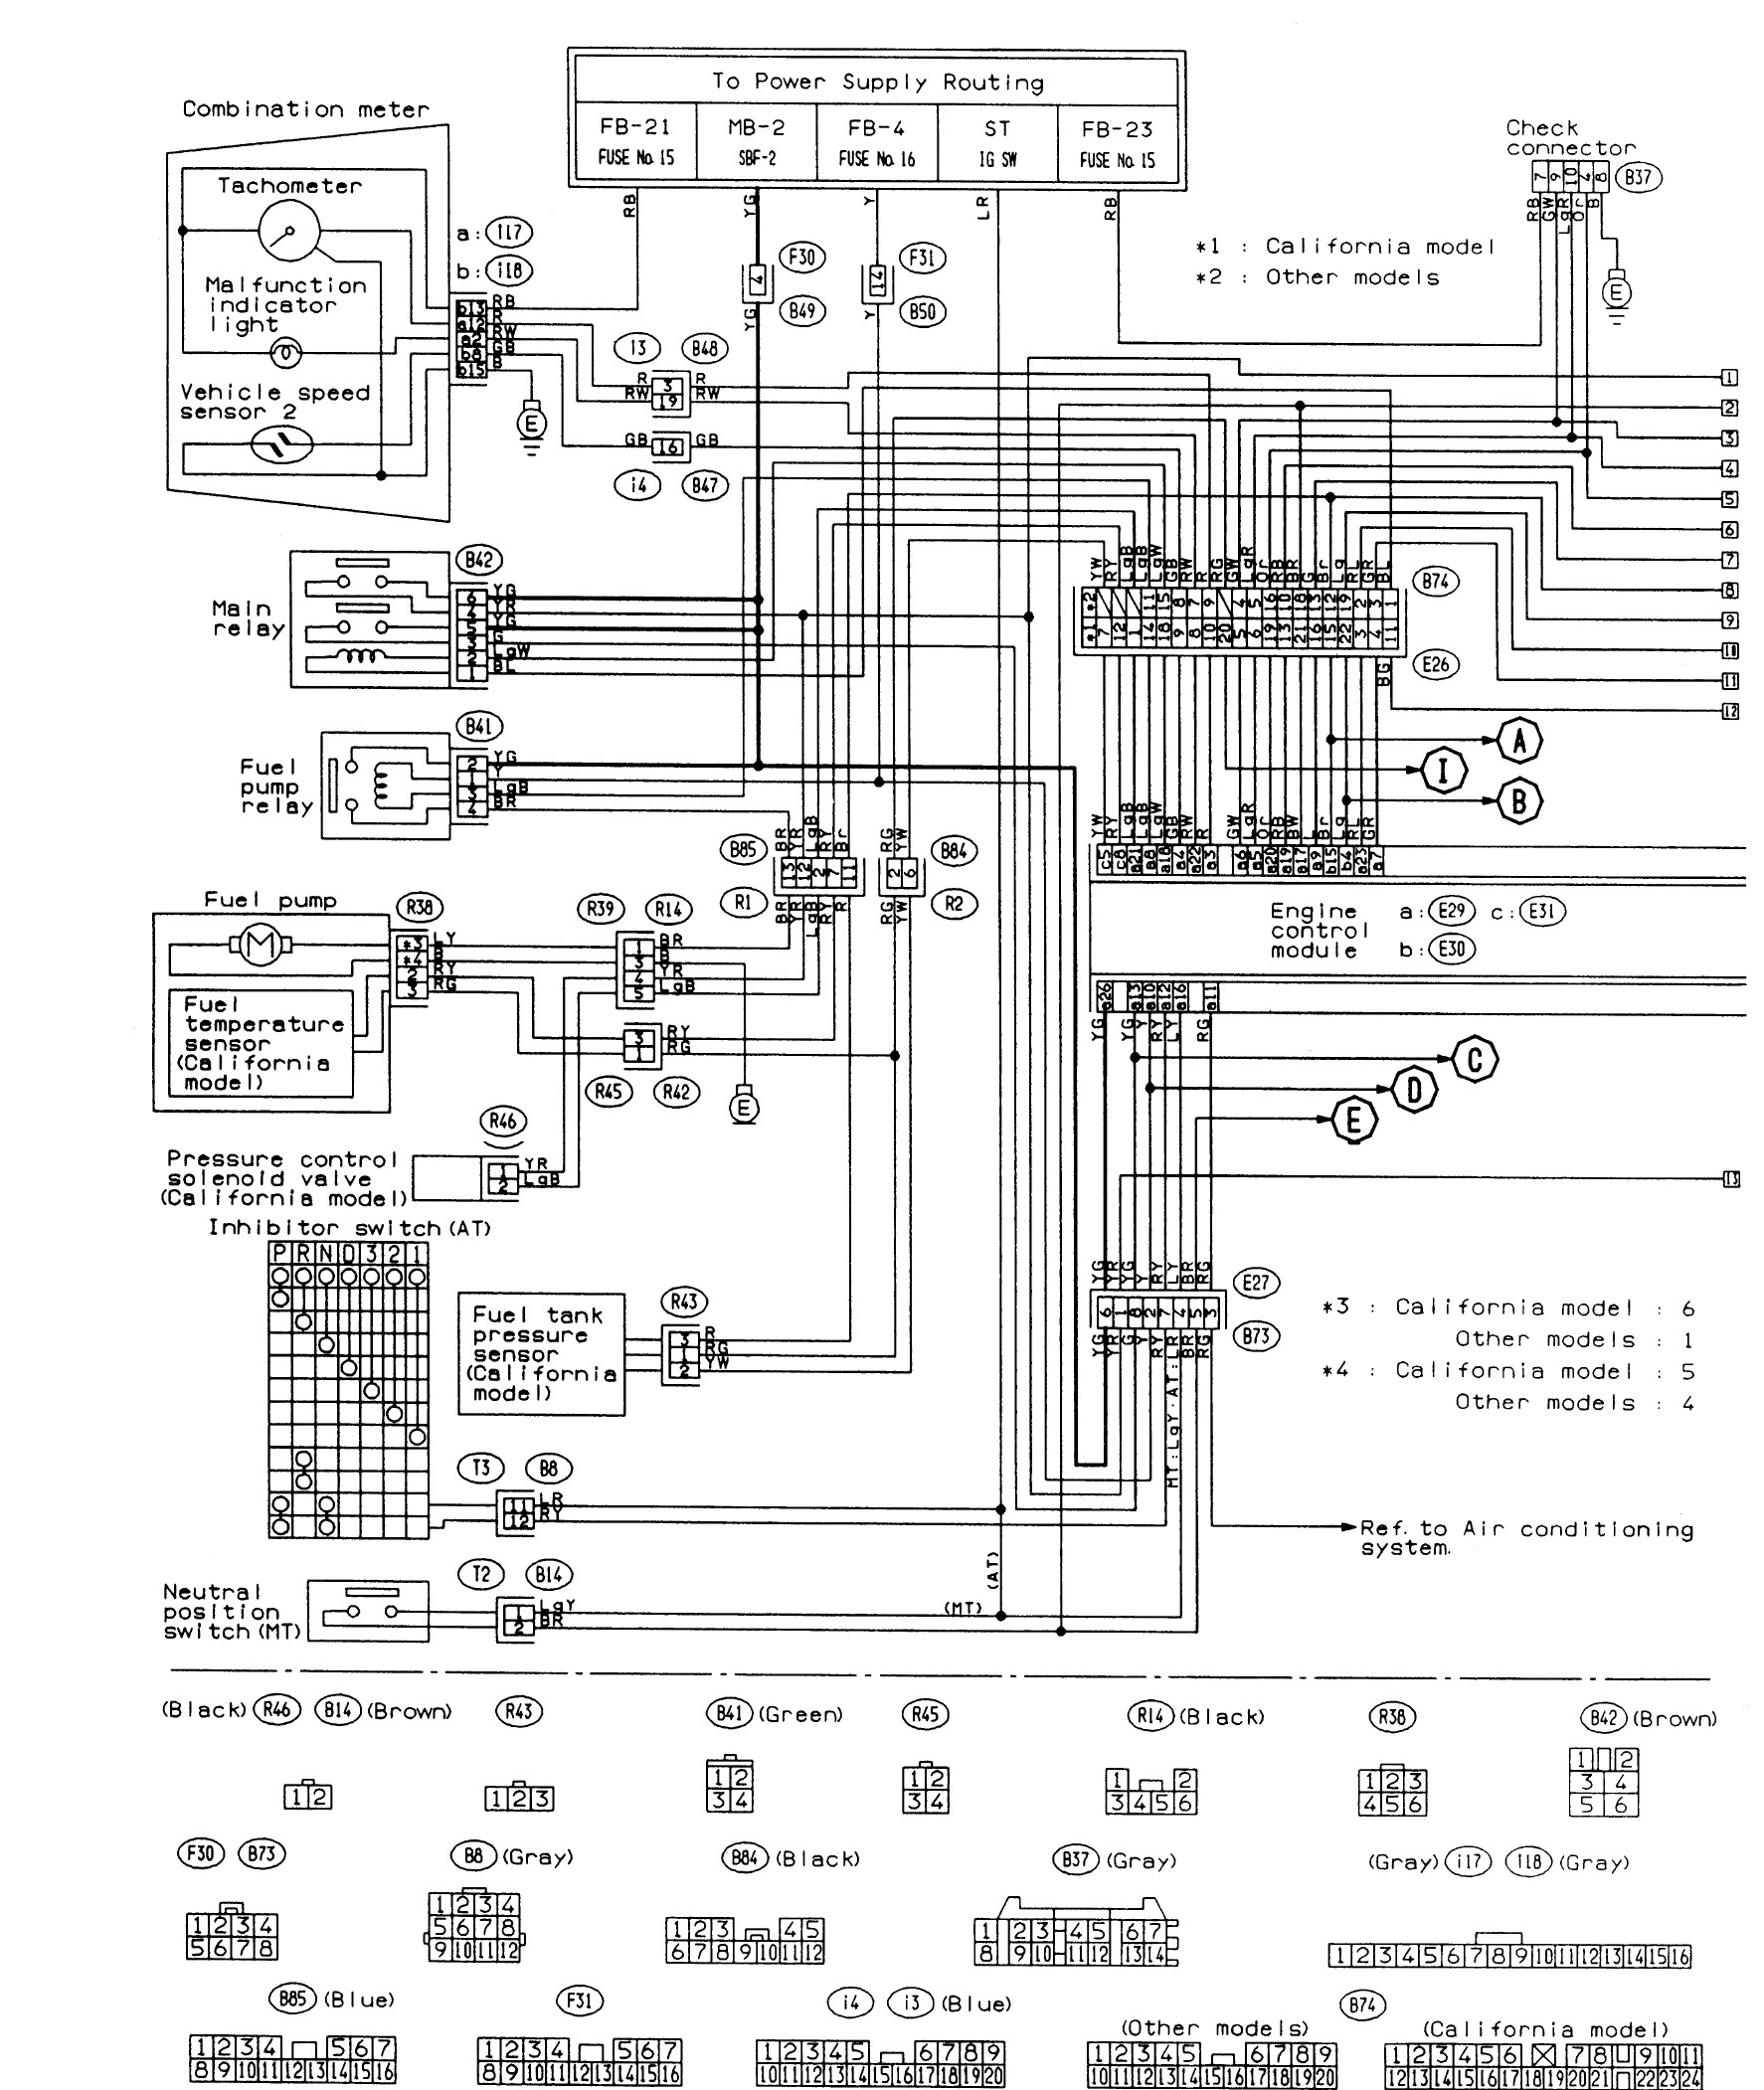 subaru legacy engine diagram 2 wiring diagram for 1997 subaru legacy rh detoxicrecenze com 2001 Subaru Outback Engine Diagram Subaru Outback Exhaust Diagram